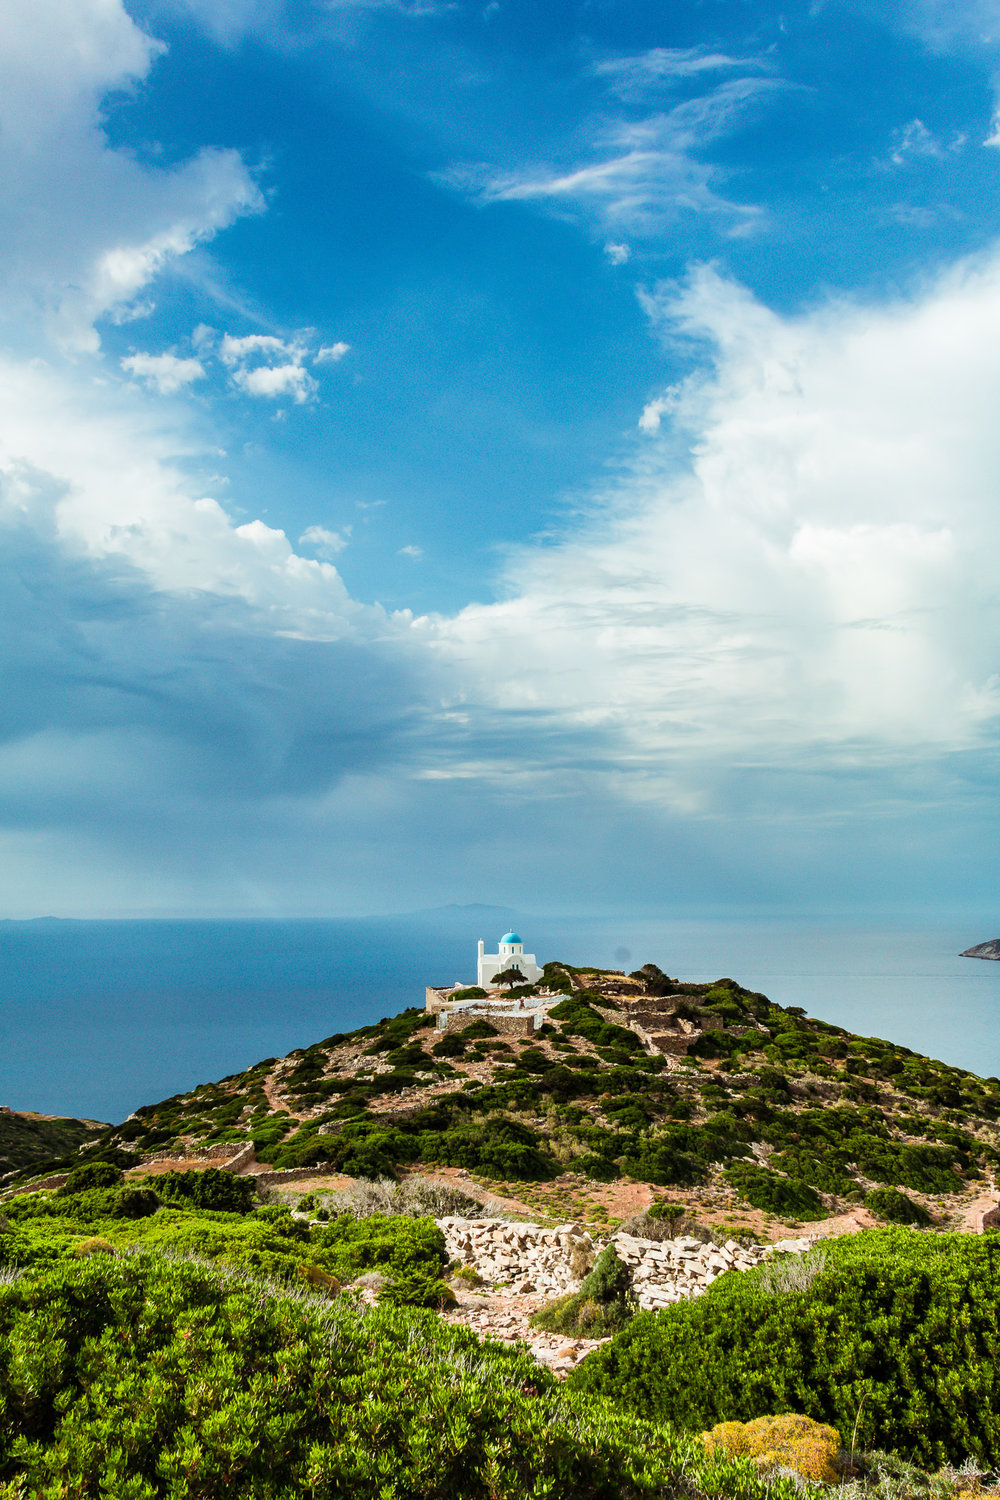 church-amorgos-stemajourneys.com.jpg